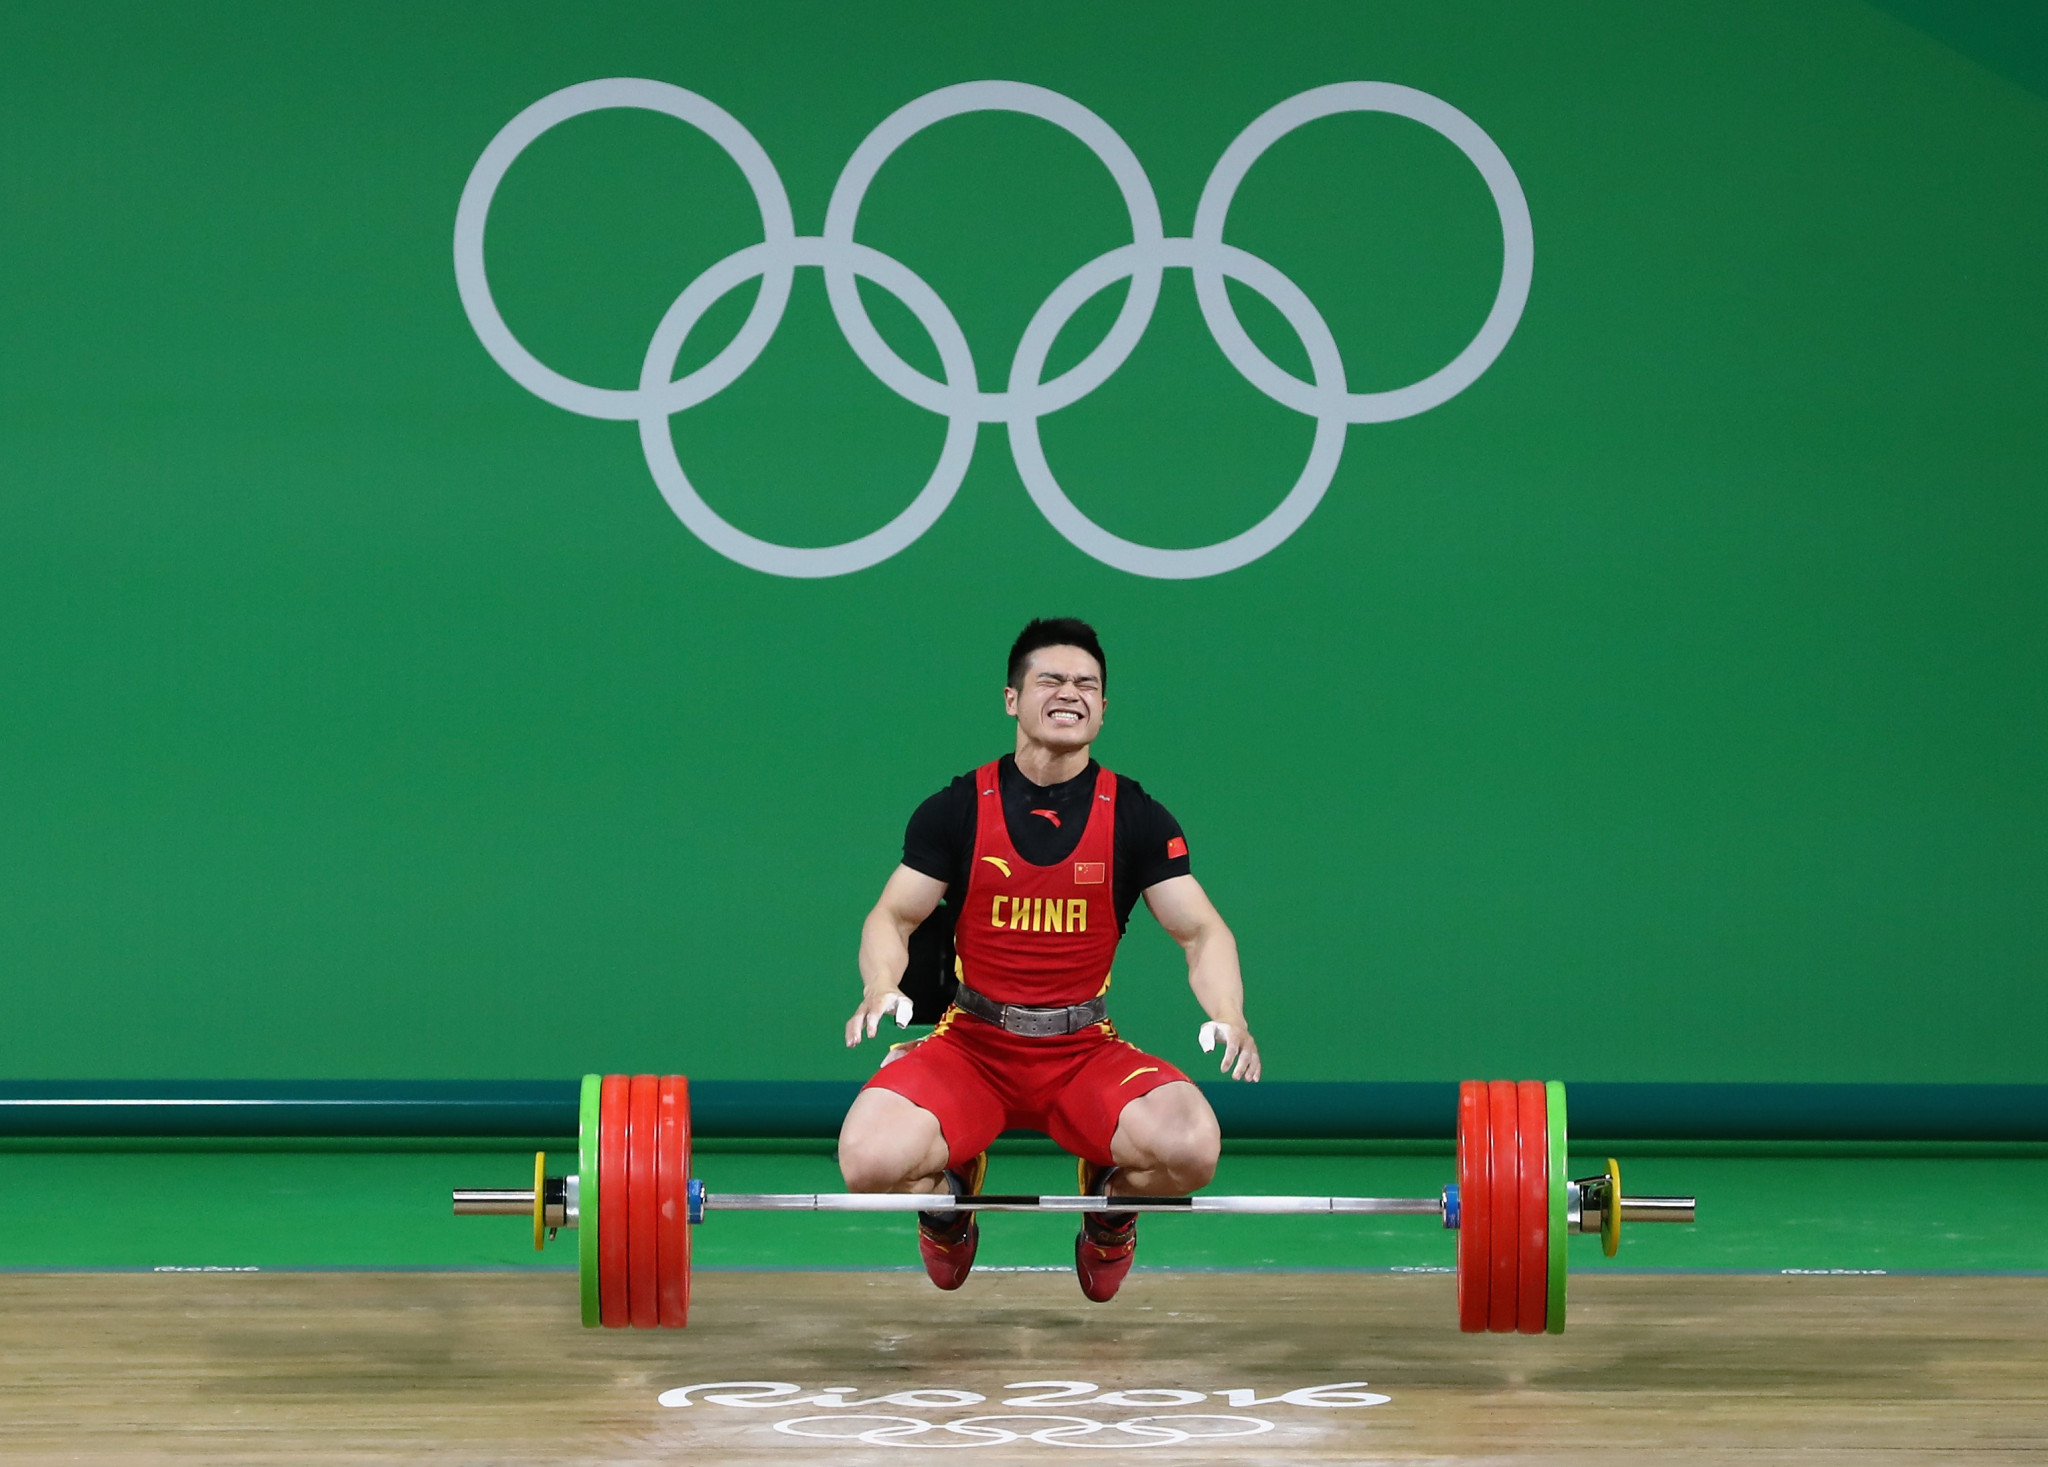 China's weightlifters hope IWF will allow them to compete at Asian Games despite year-long ban